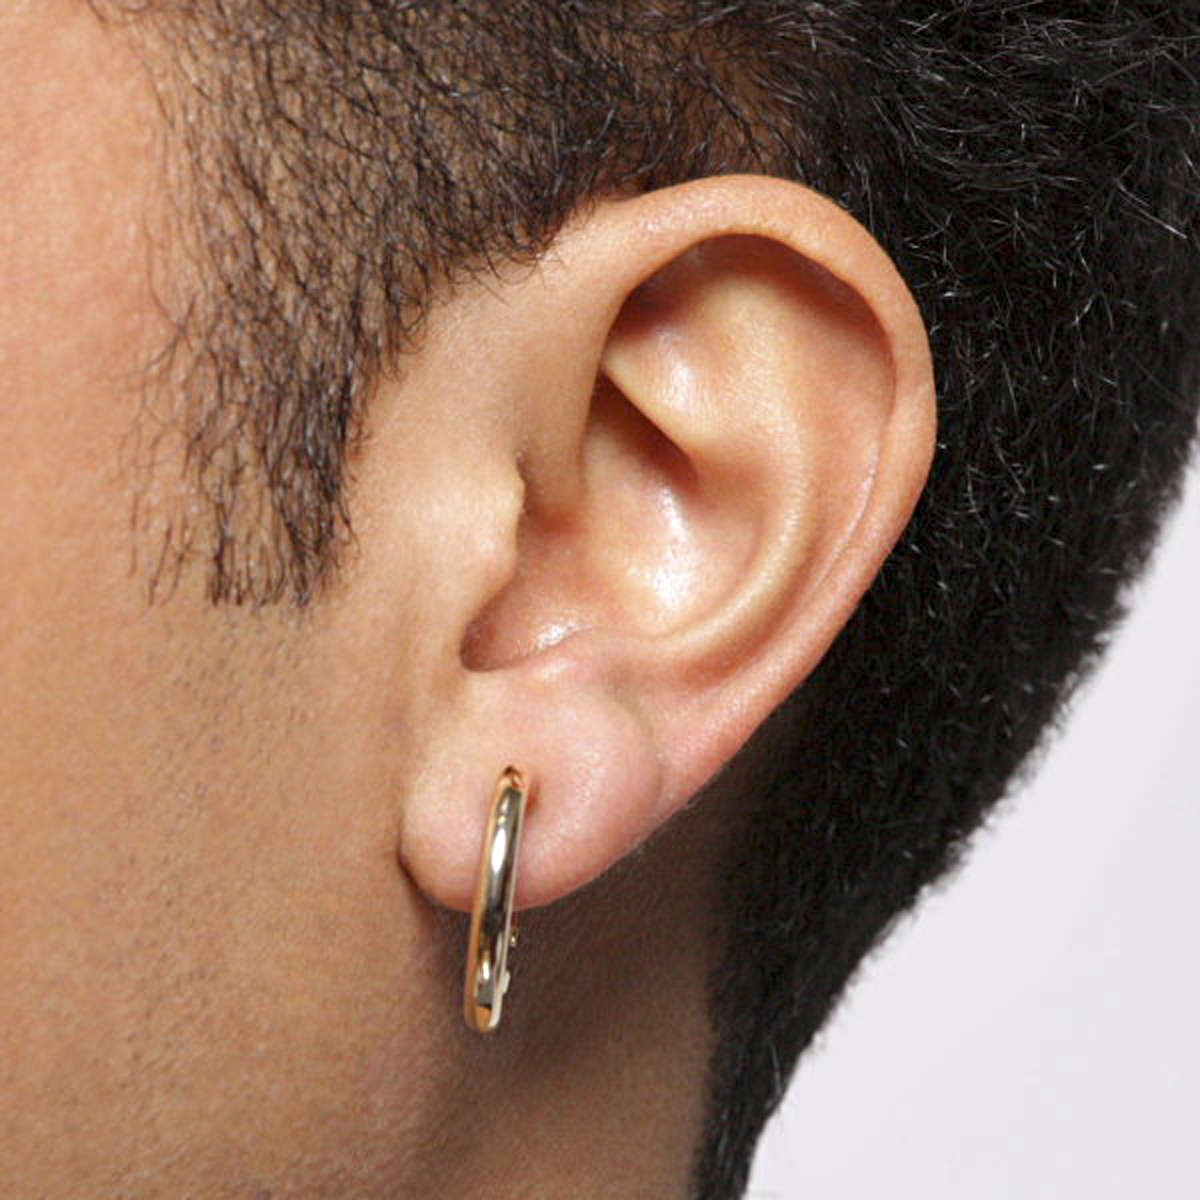 Men Earrings Menu0027s Single Goldtone Hoop Clip On Earring Odwqere